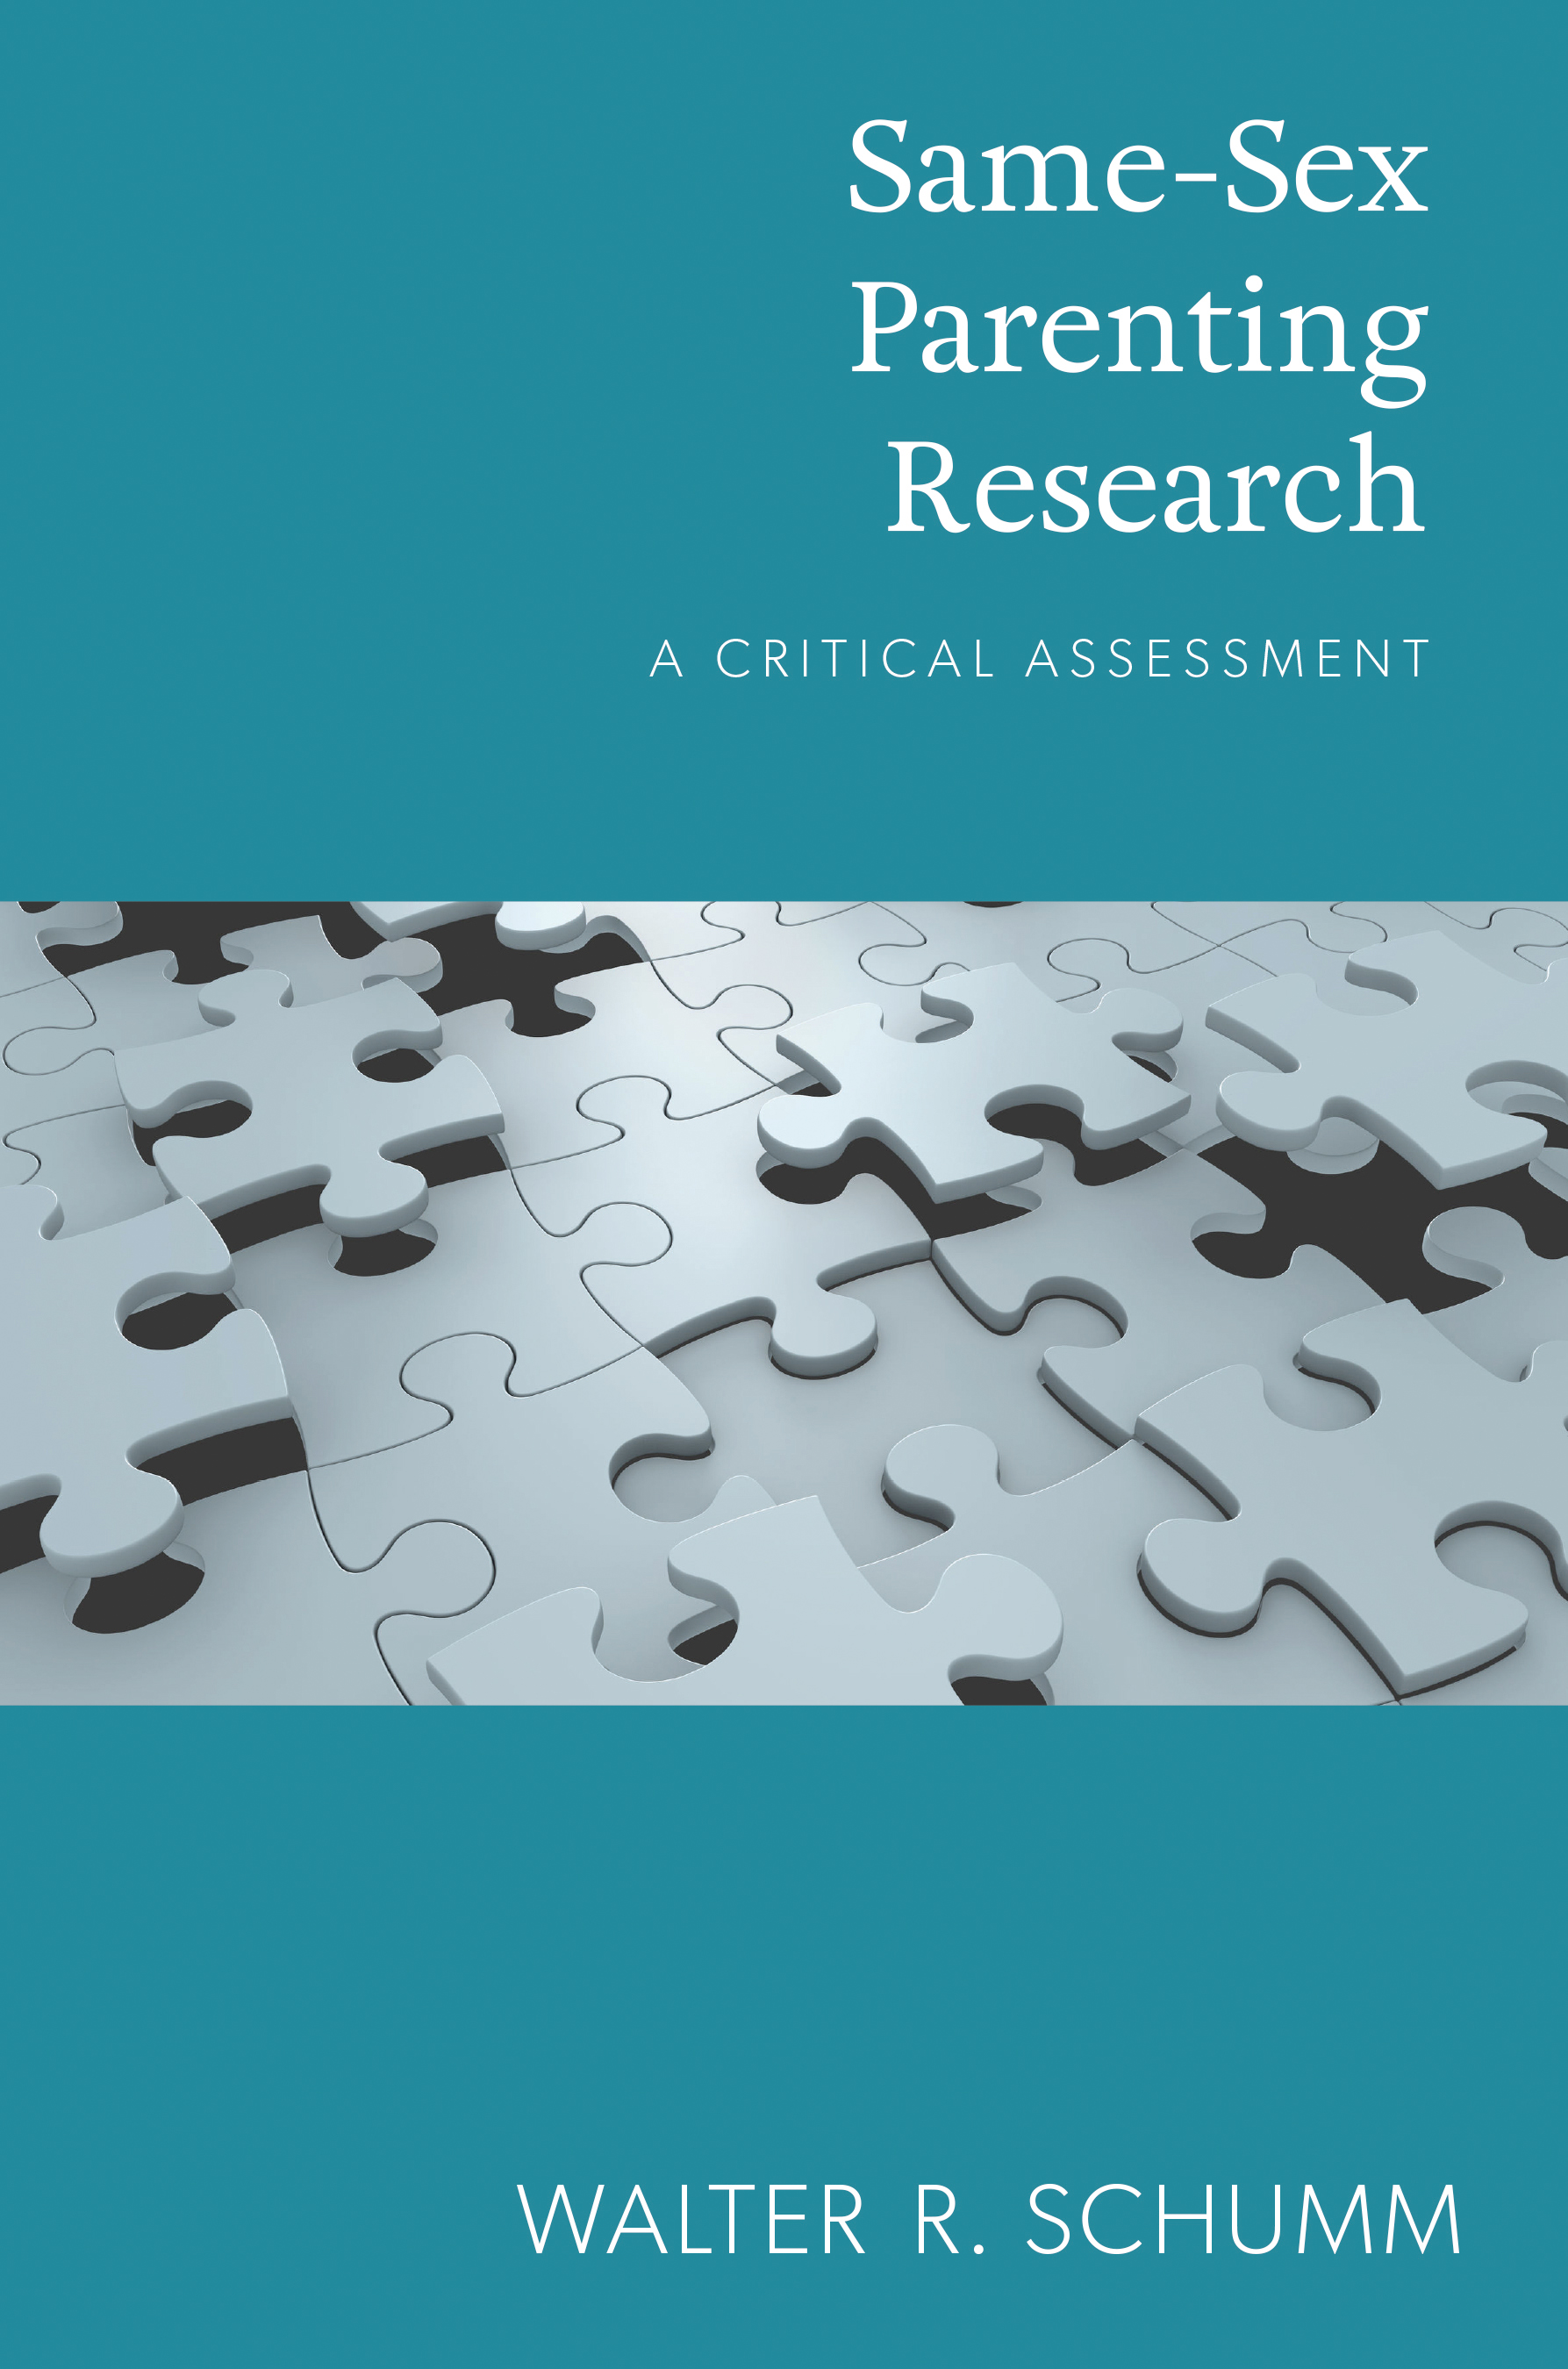 Same-Sex Parenting Research: A Critical Assessment